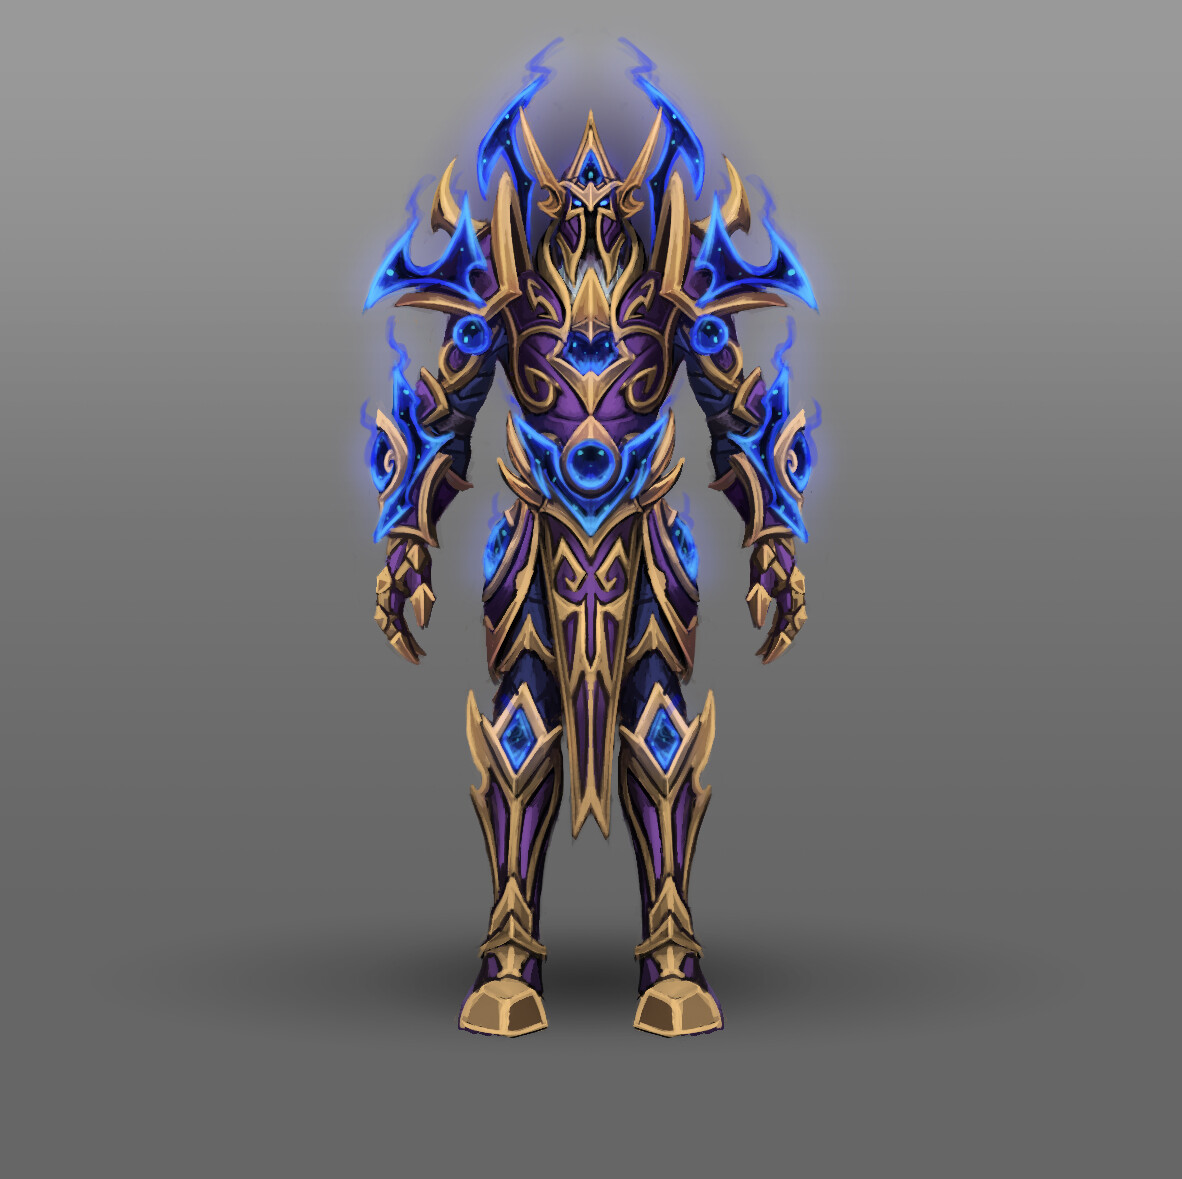 Void Elf Heritage Armor Set – Skimpy edit, you can download the model from my deviantart account too.